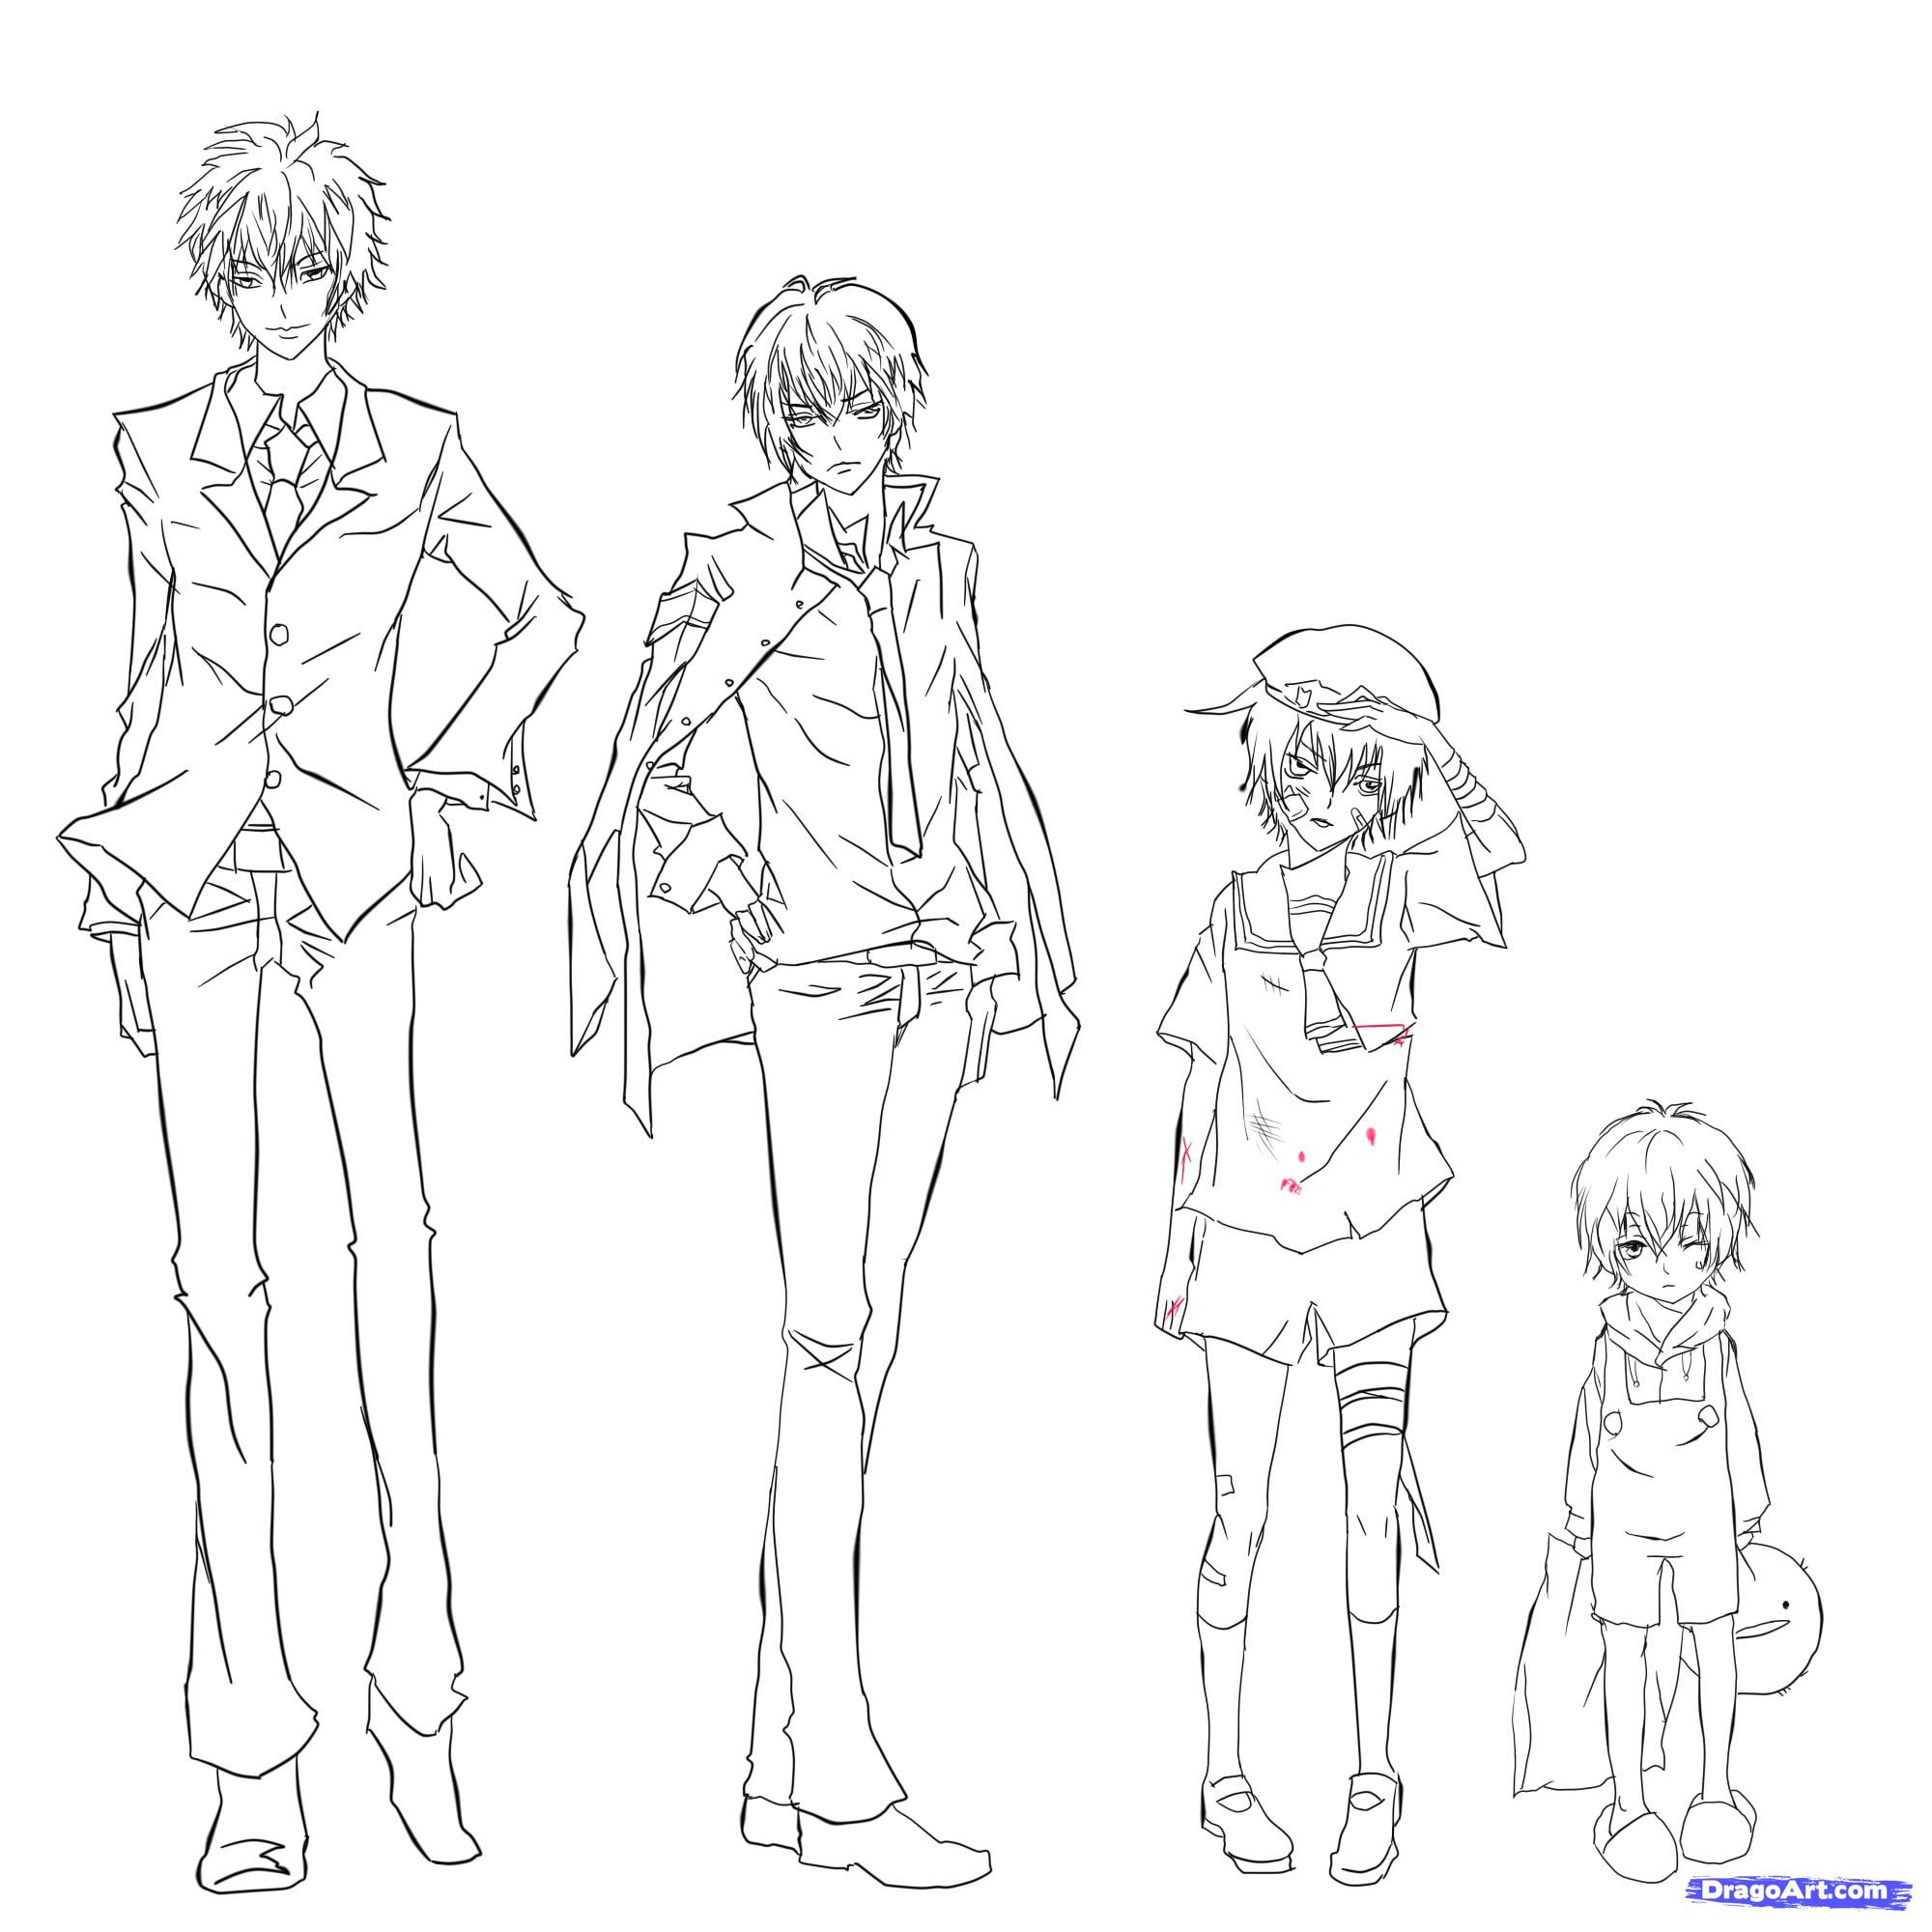 2000x2000 Drawing Male Anime 16. How To Sketch An Anime Boy